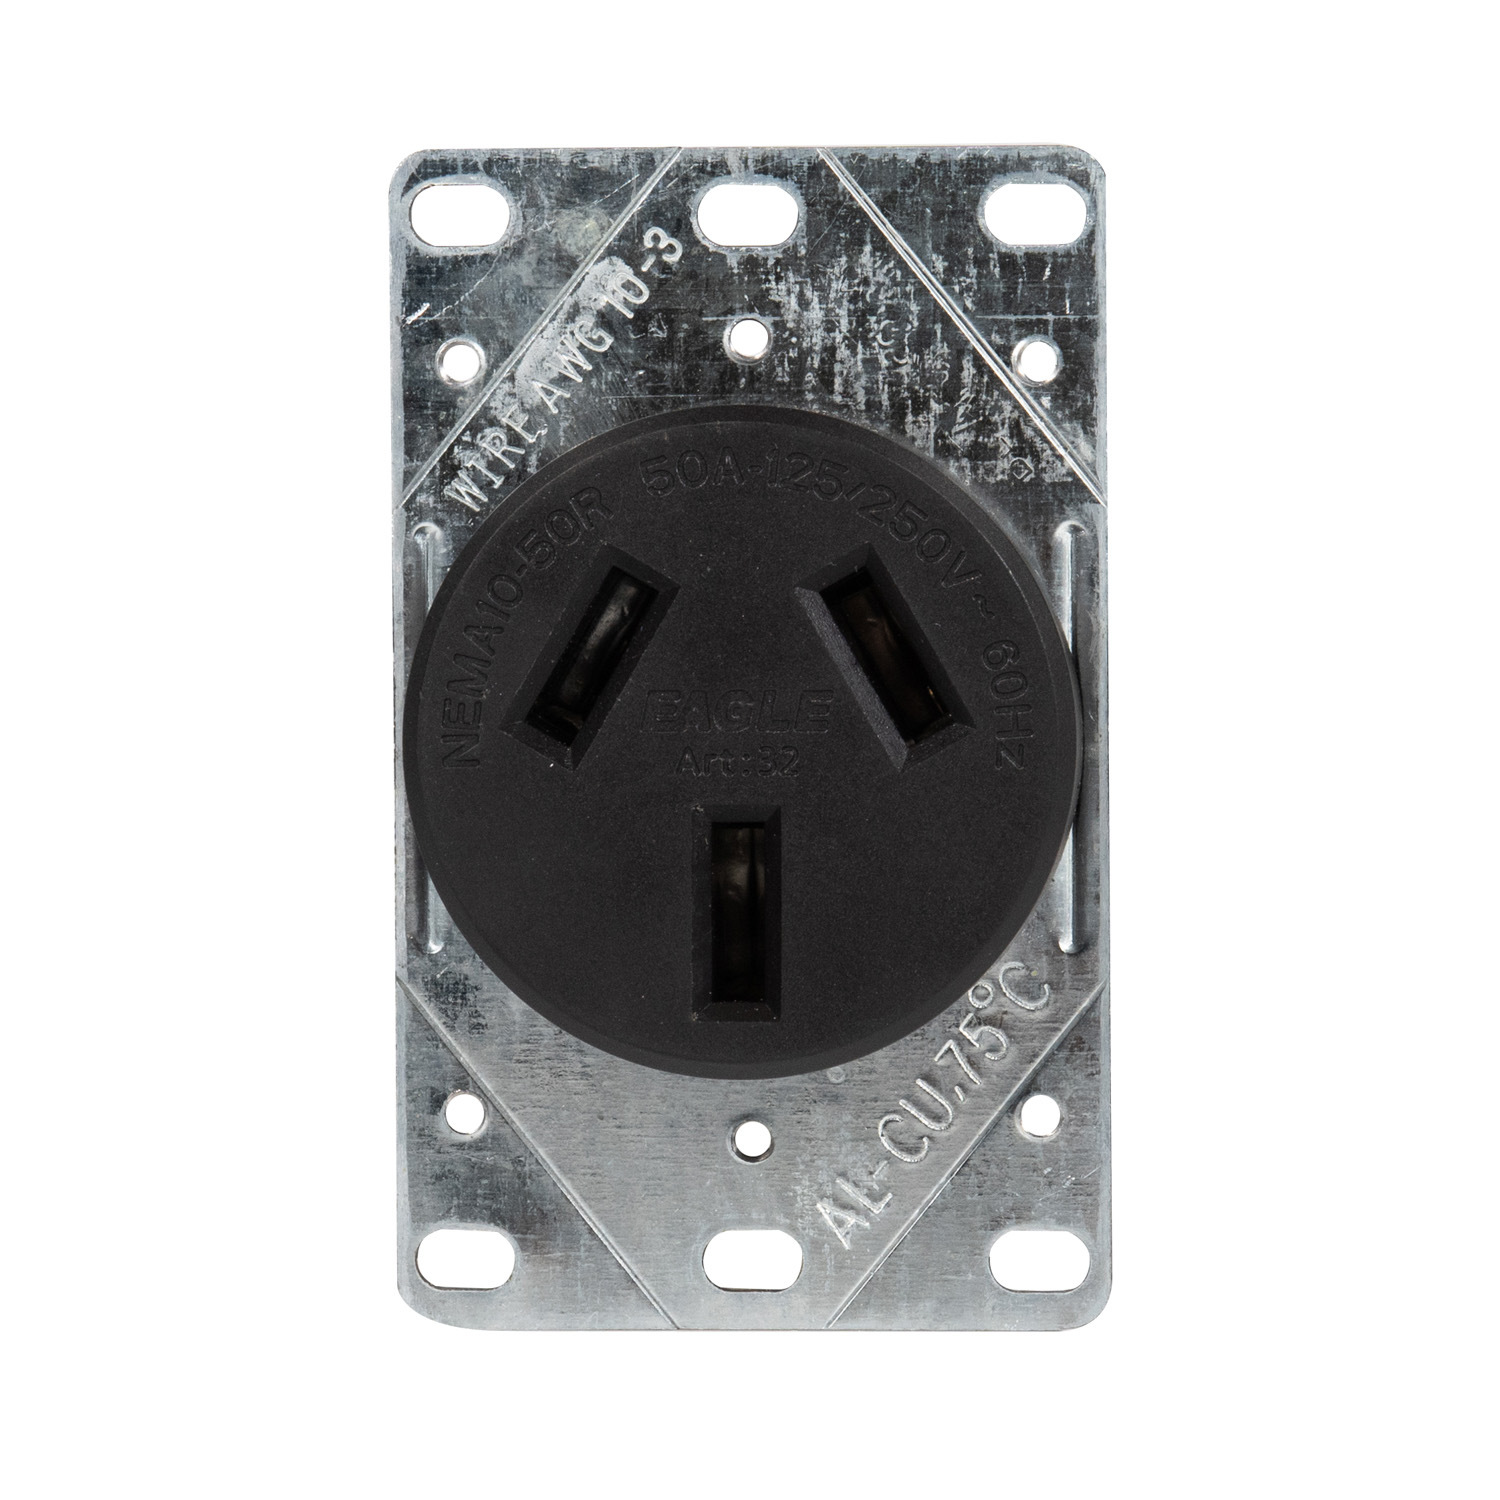 50 Amp Receptacle >> Hot Item 50 Amp Nema 10 50r Flush Mounting Industrial Receptacle